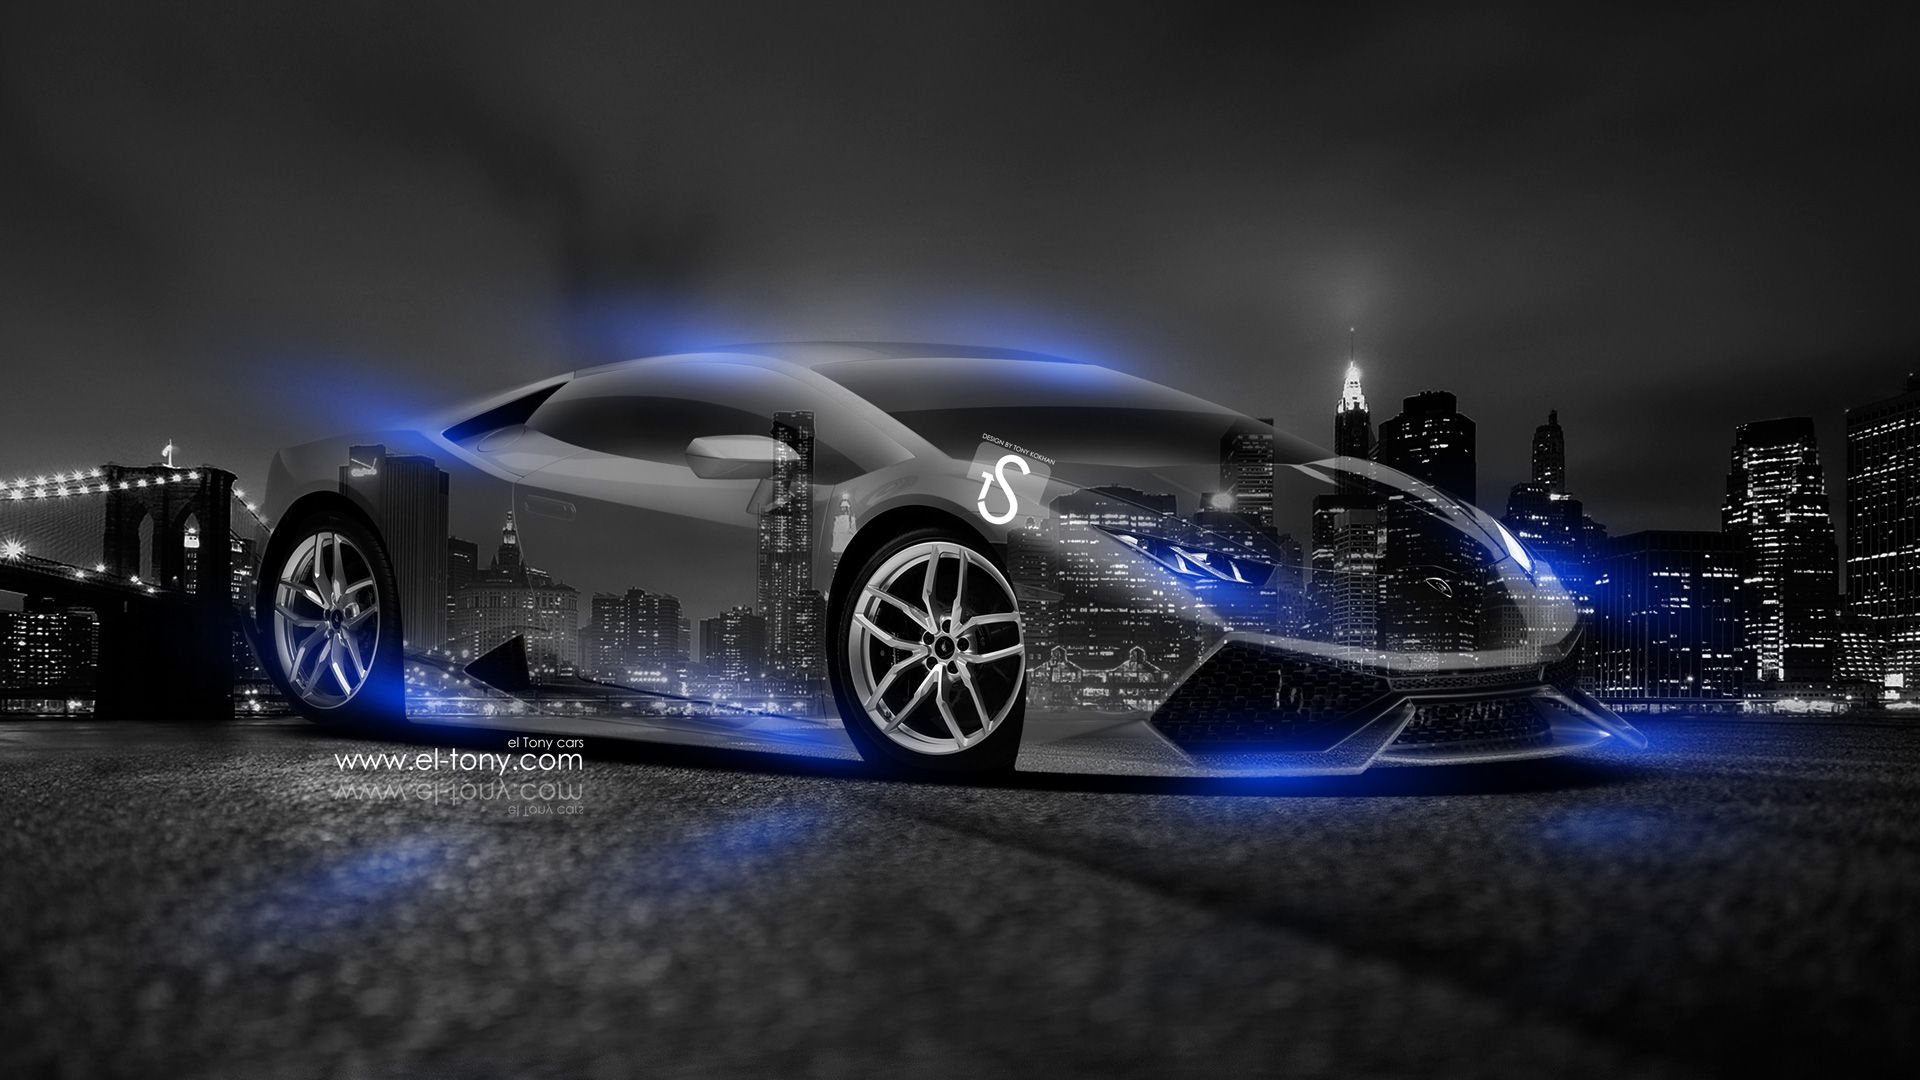 Charmant Lamborghini Gallardo Back Abstract Car Design By Tony Kokhan Wallpapers) U2013  HD Desktop Wallpapers